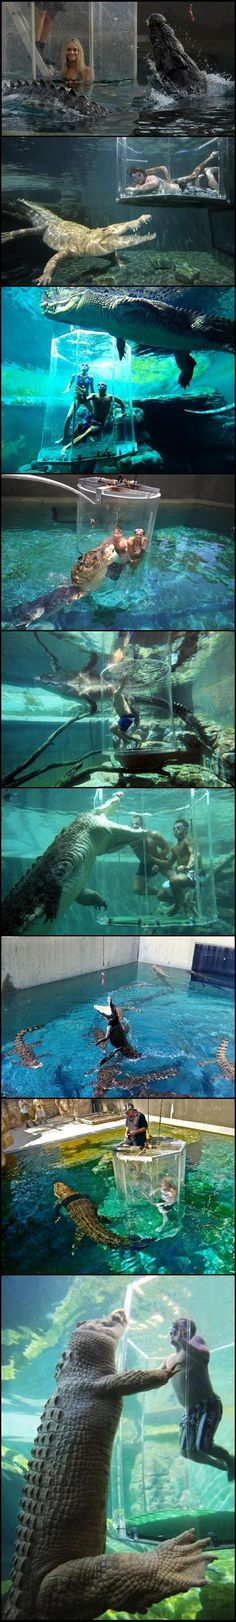 Swimming with alligators. I think they are so cute for some reason. Look at their webbed feet! Love love love <3